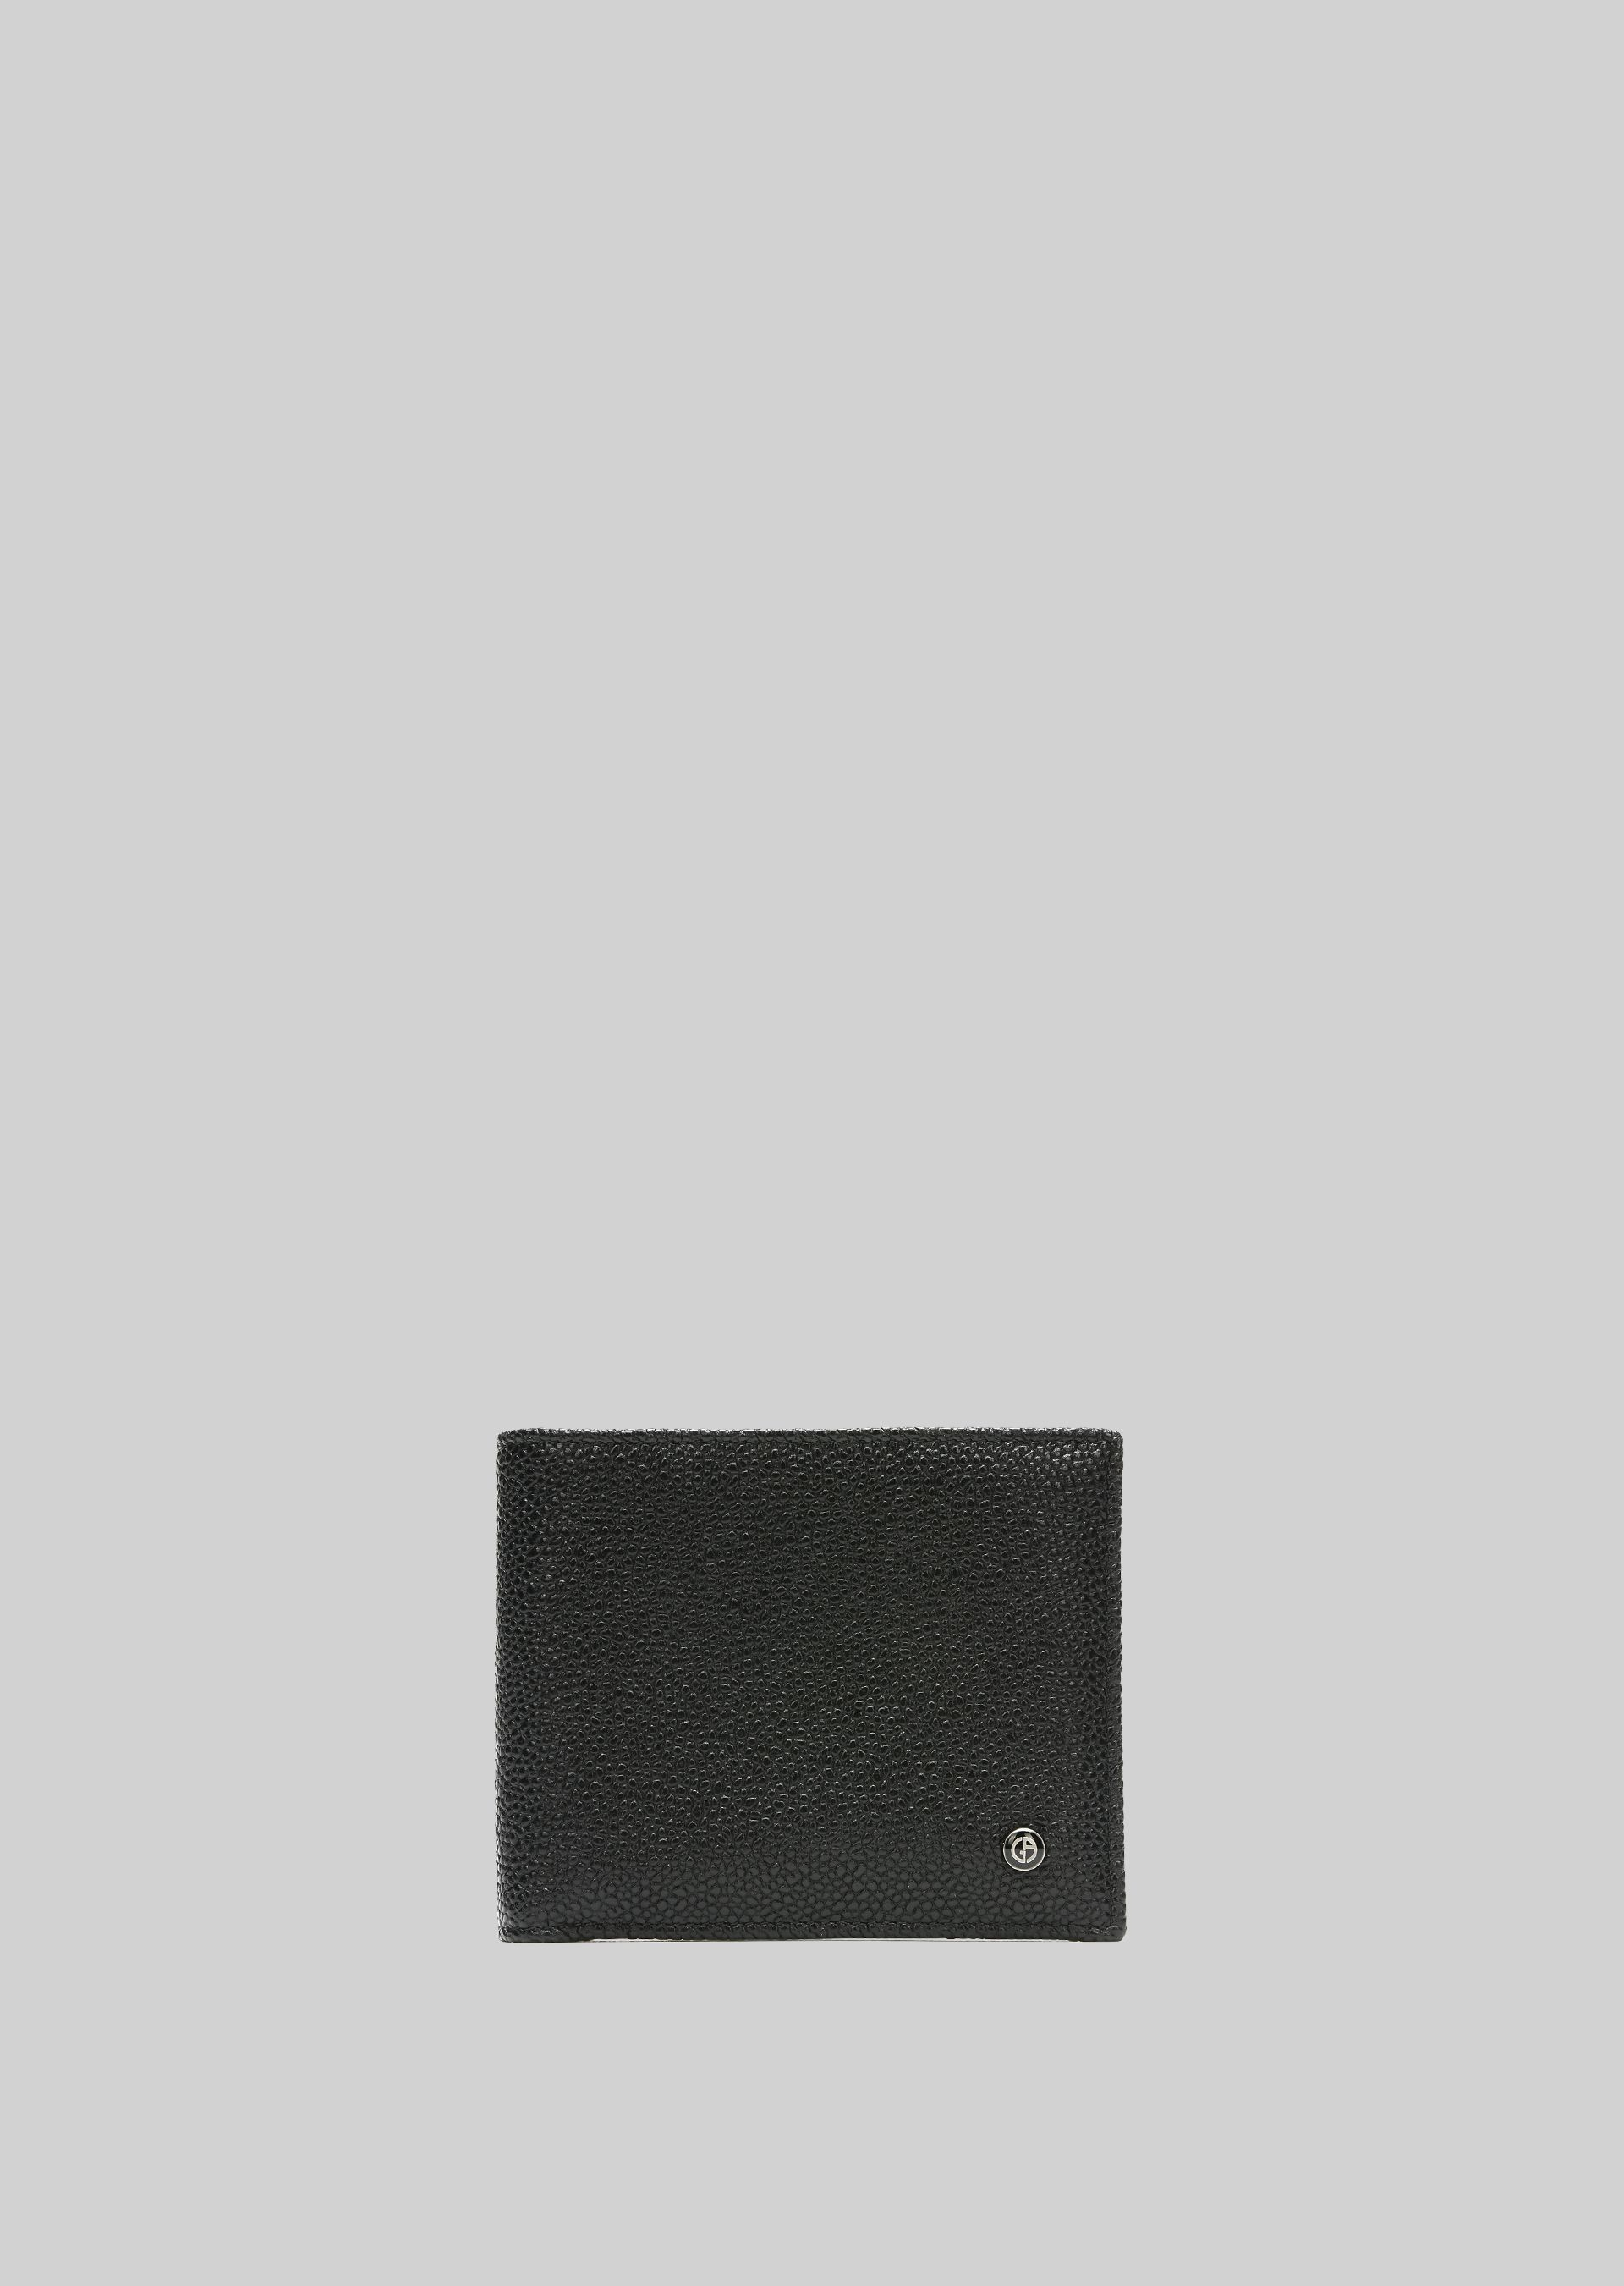 GIORGIO ARMANI LEATHER WALLET Wallet U f